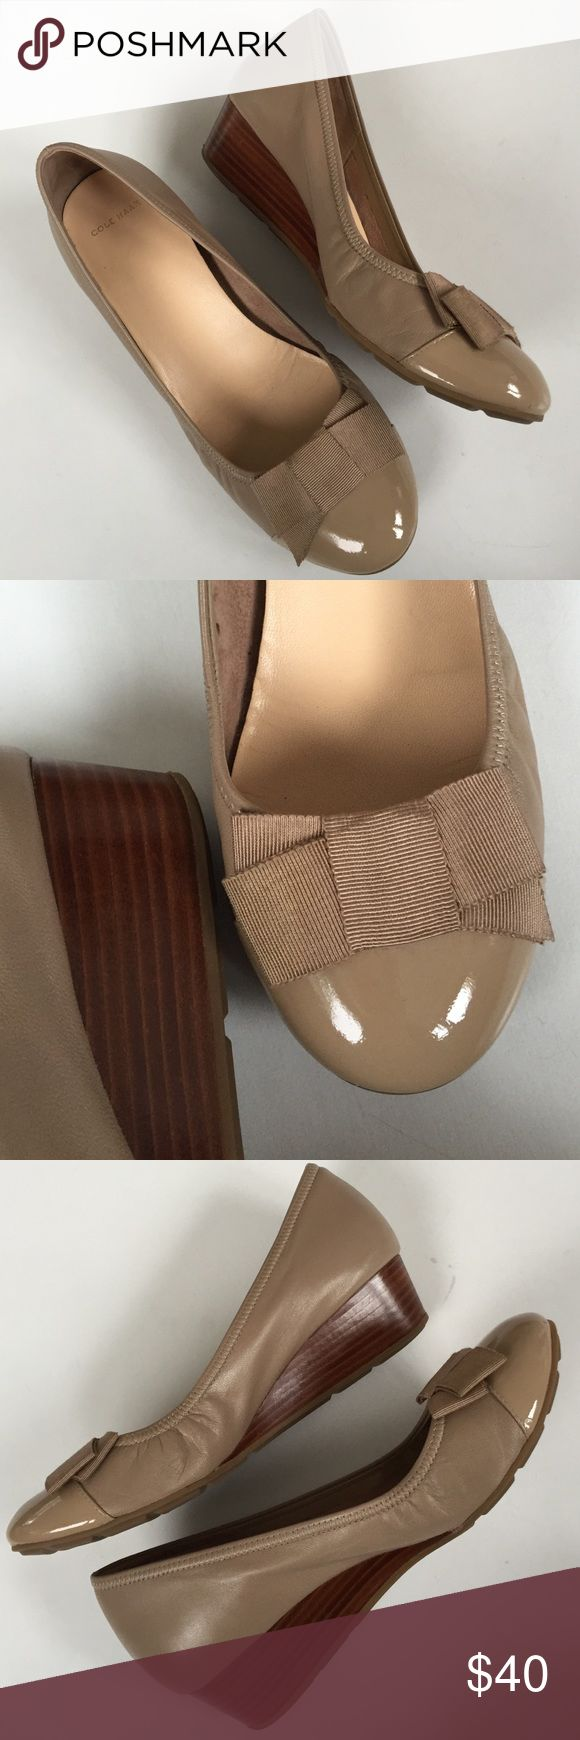 """EUC Cole Haan (Nike Air) leather shoes Excellent condition; Beautiful taupe leather (toe area is patent leather) with 1 1/2"""" wedge heel. Tonal grosgrain bow on toe. Nike Air Technology for comfort; Smoke-free/pet-free home. Cole Haan Shoes"""